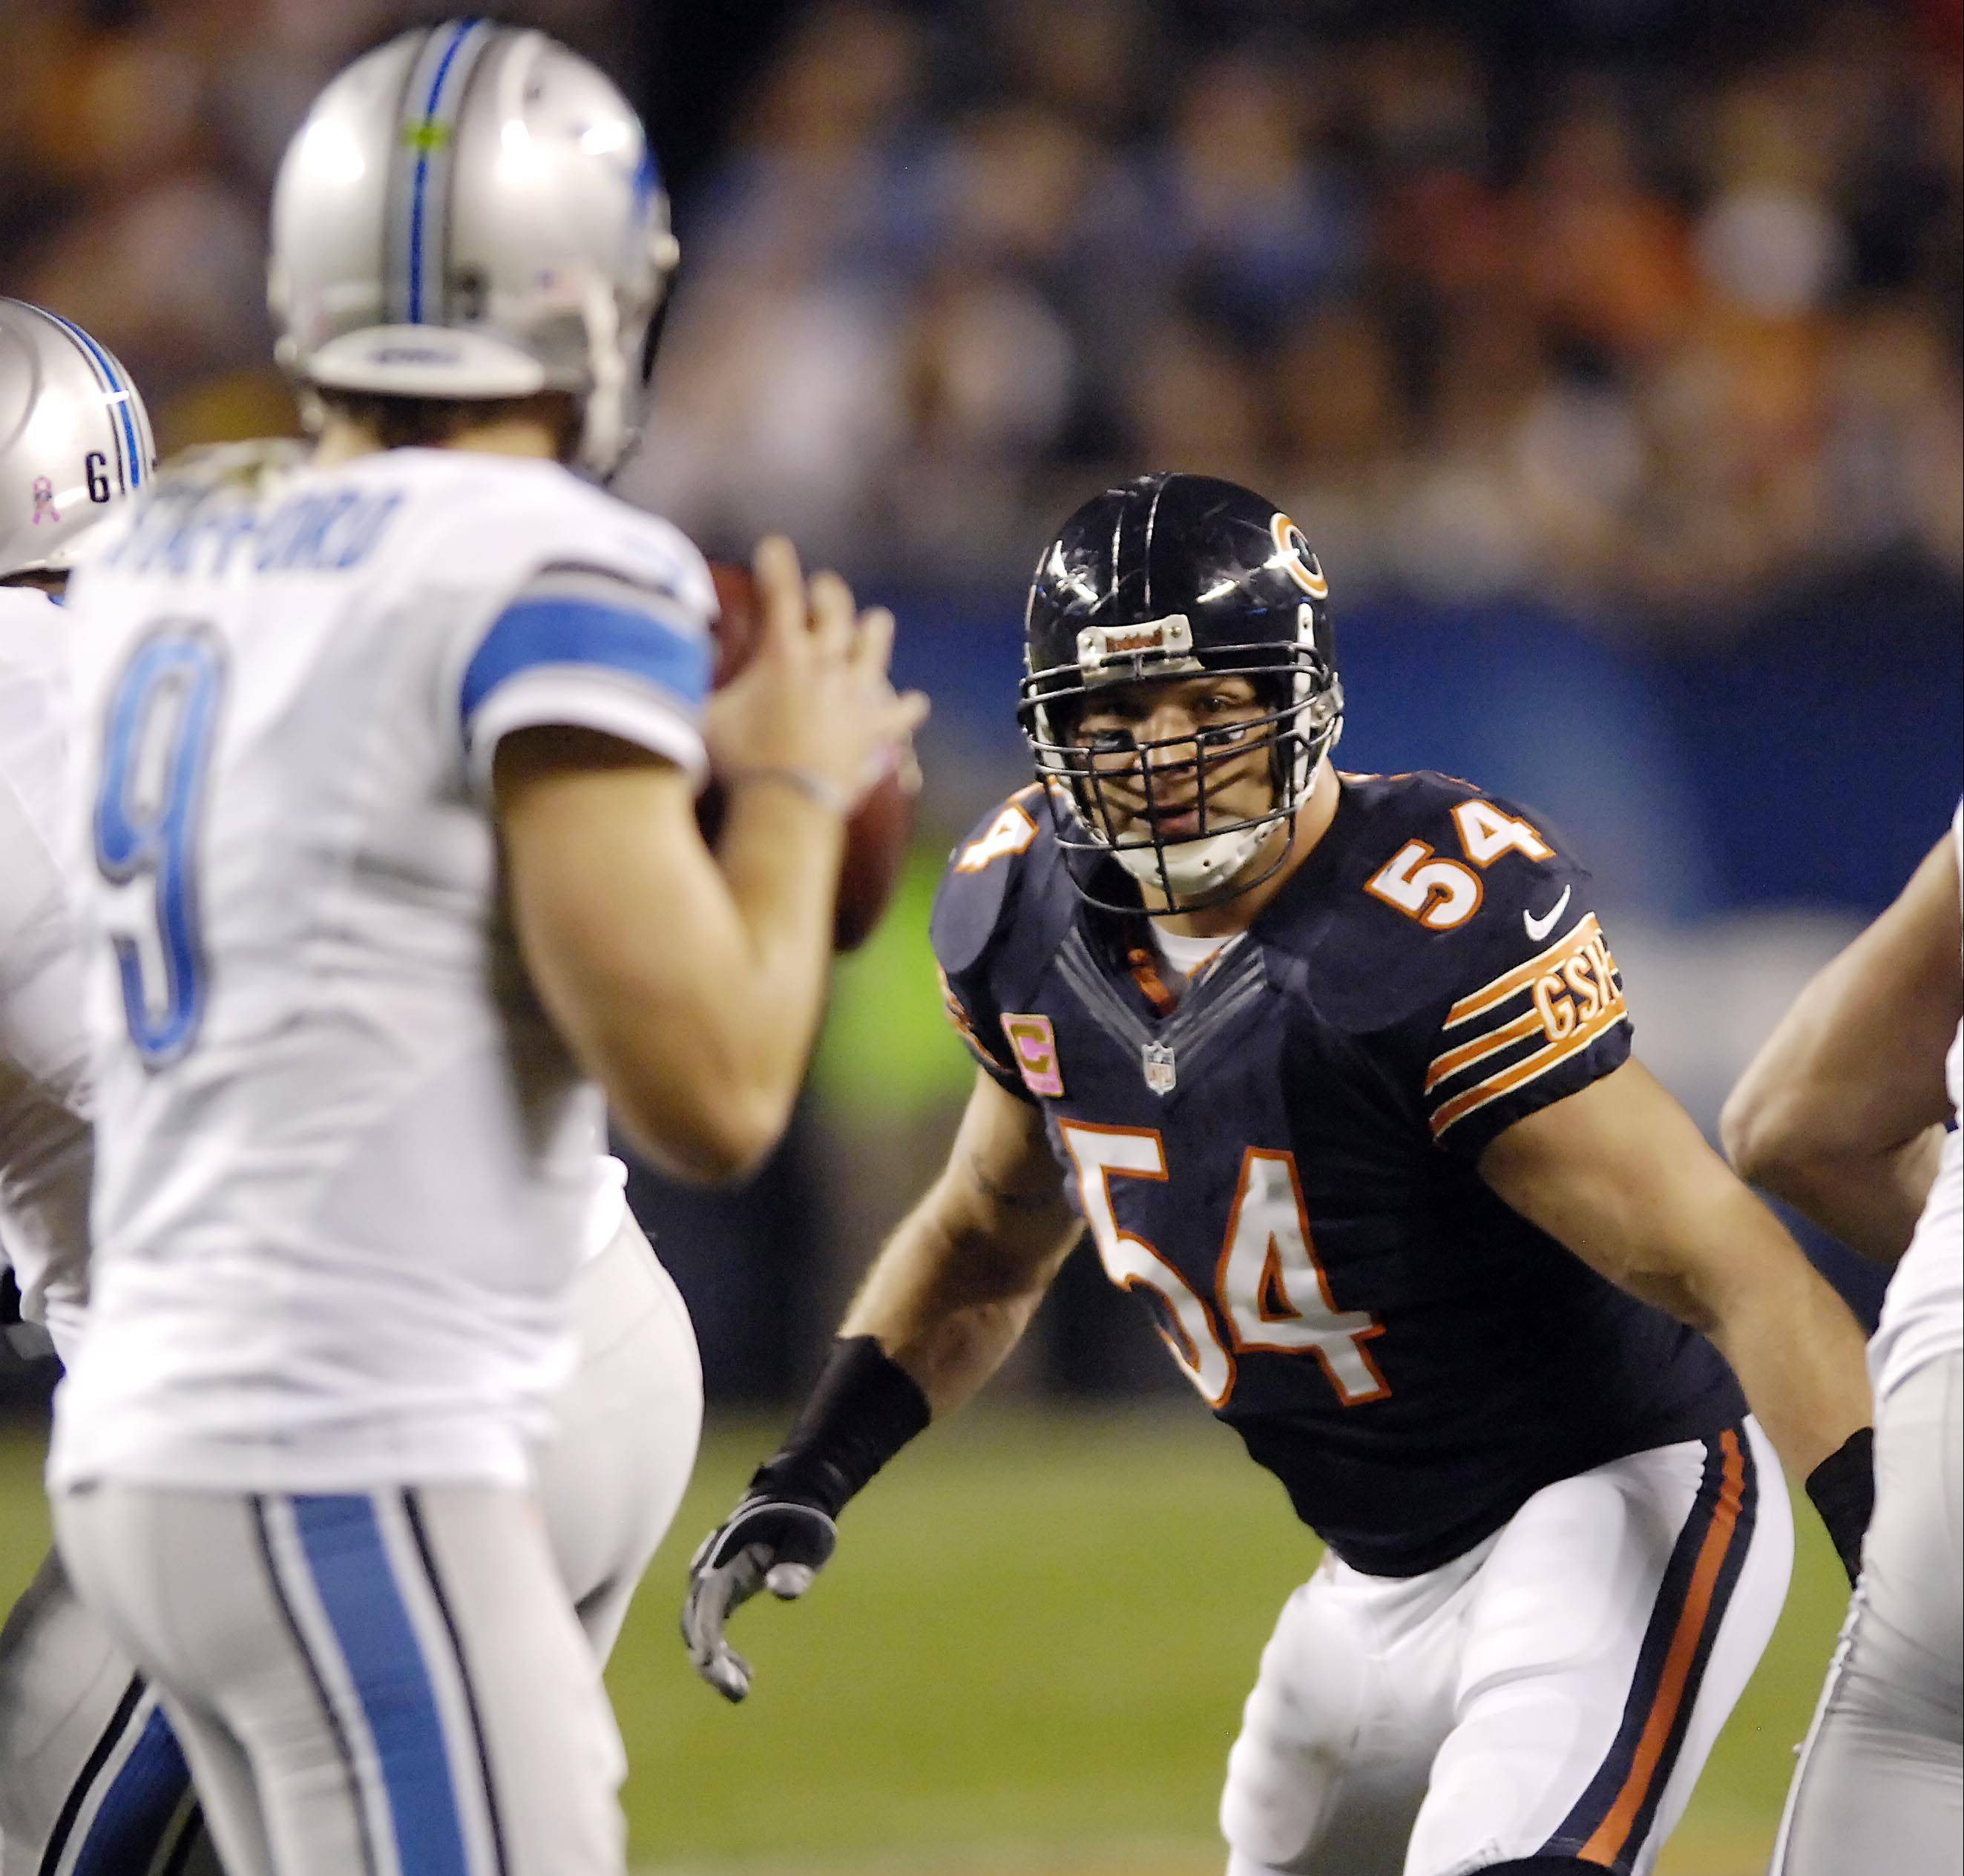 The Bears� Brian Urlacher has Lions QB Matthew Stafford in his sights during the first half at Soldier Field on Monday. Stafford was forced to scramble and was sacked by Julius Peppers.